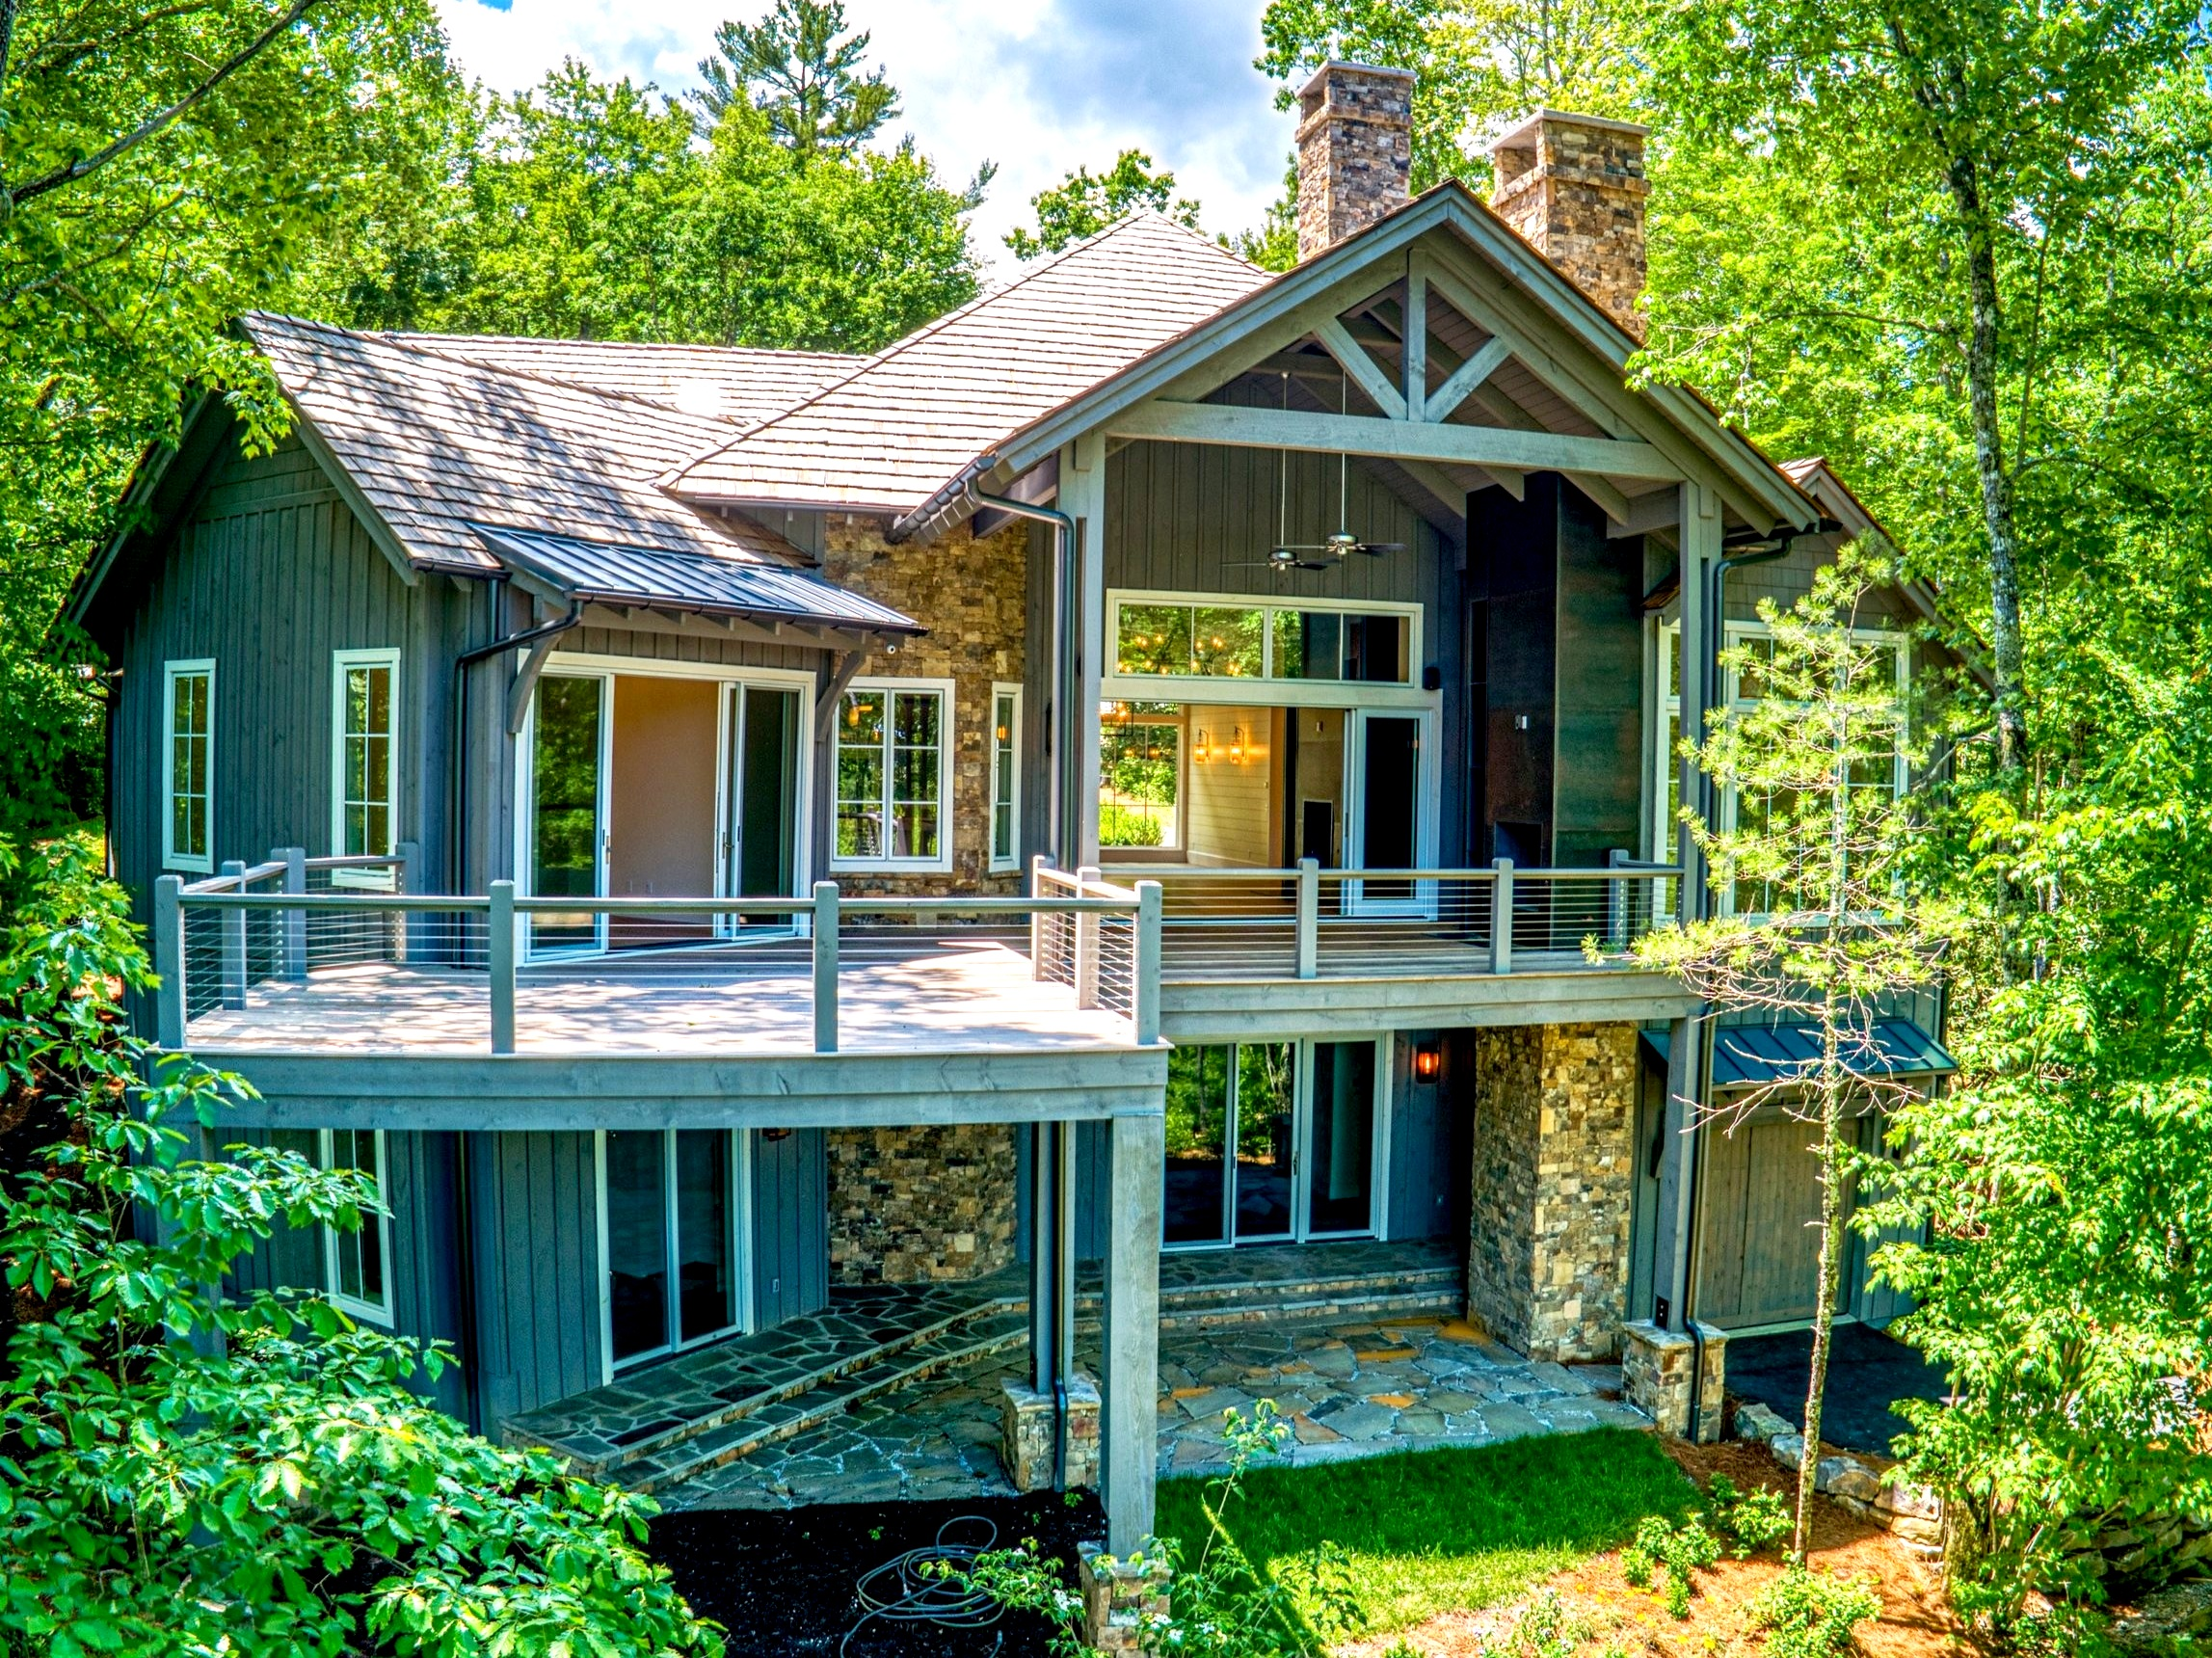 Nestled in the forest, deck extends out to capture more golf course views.